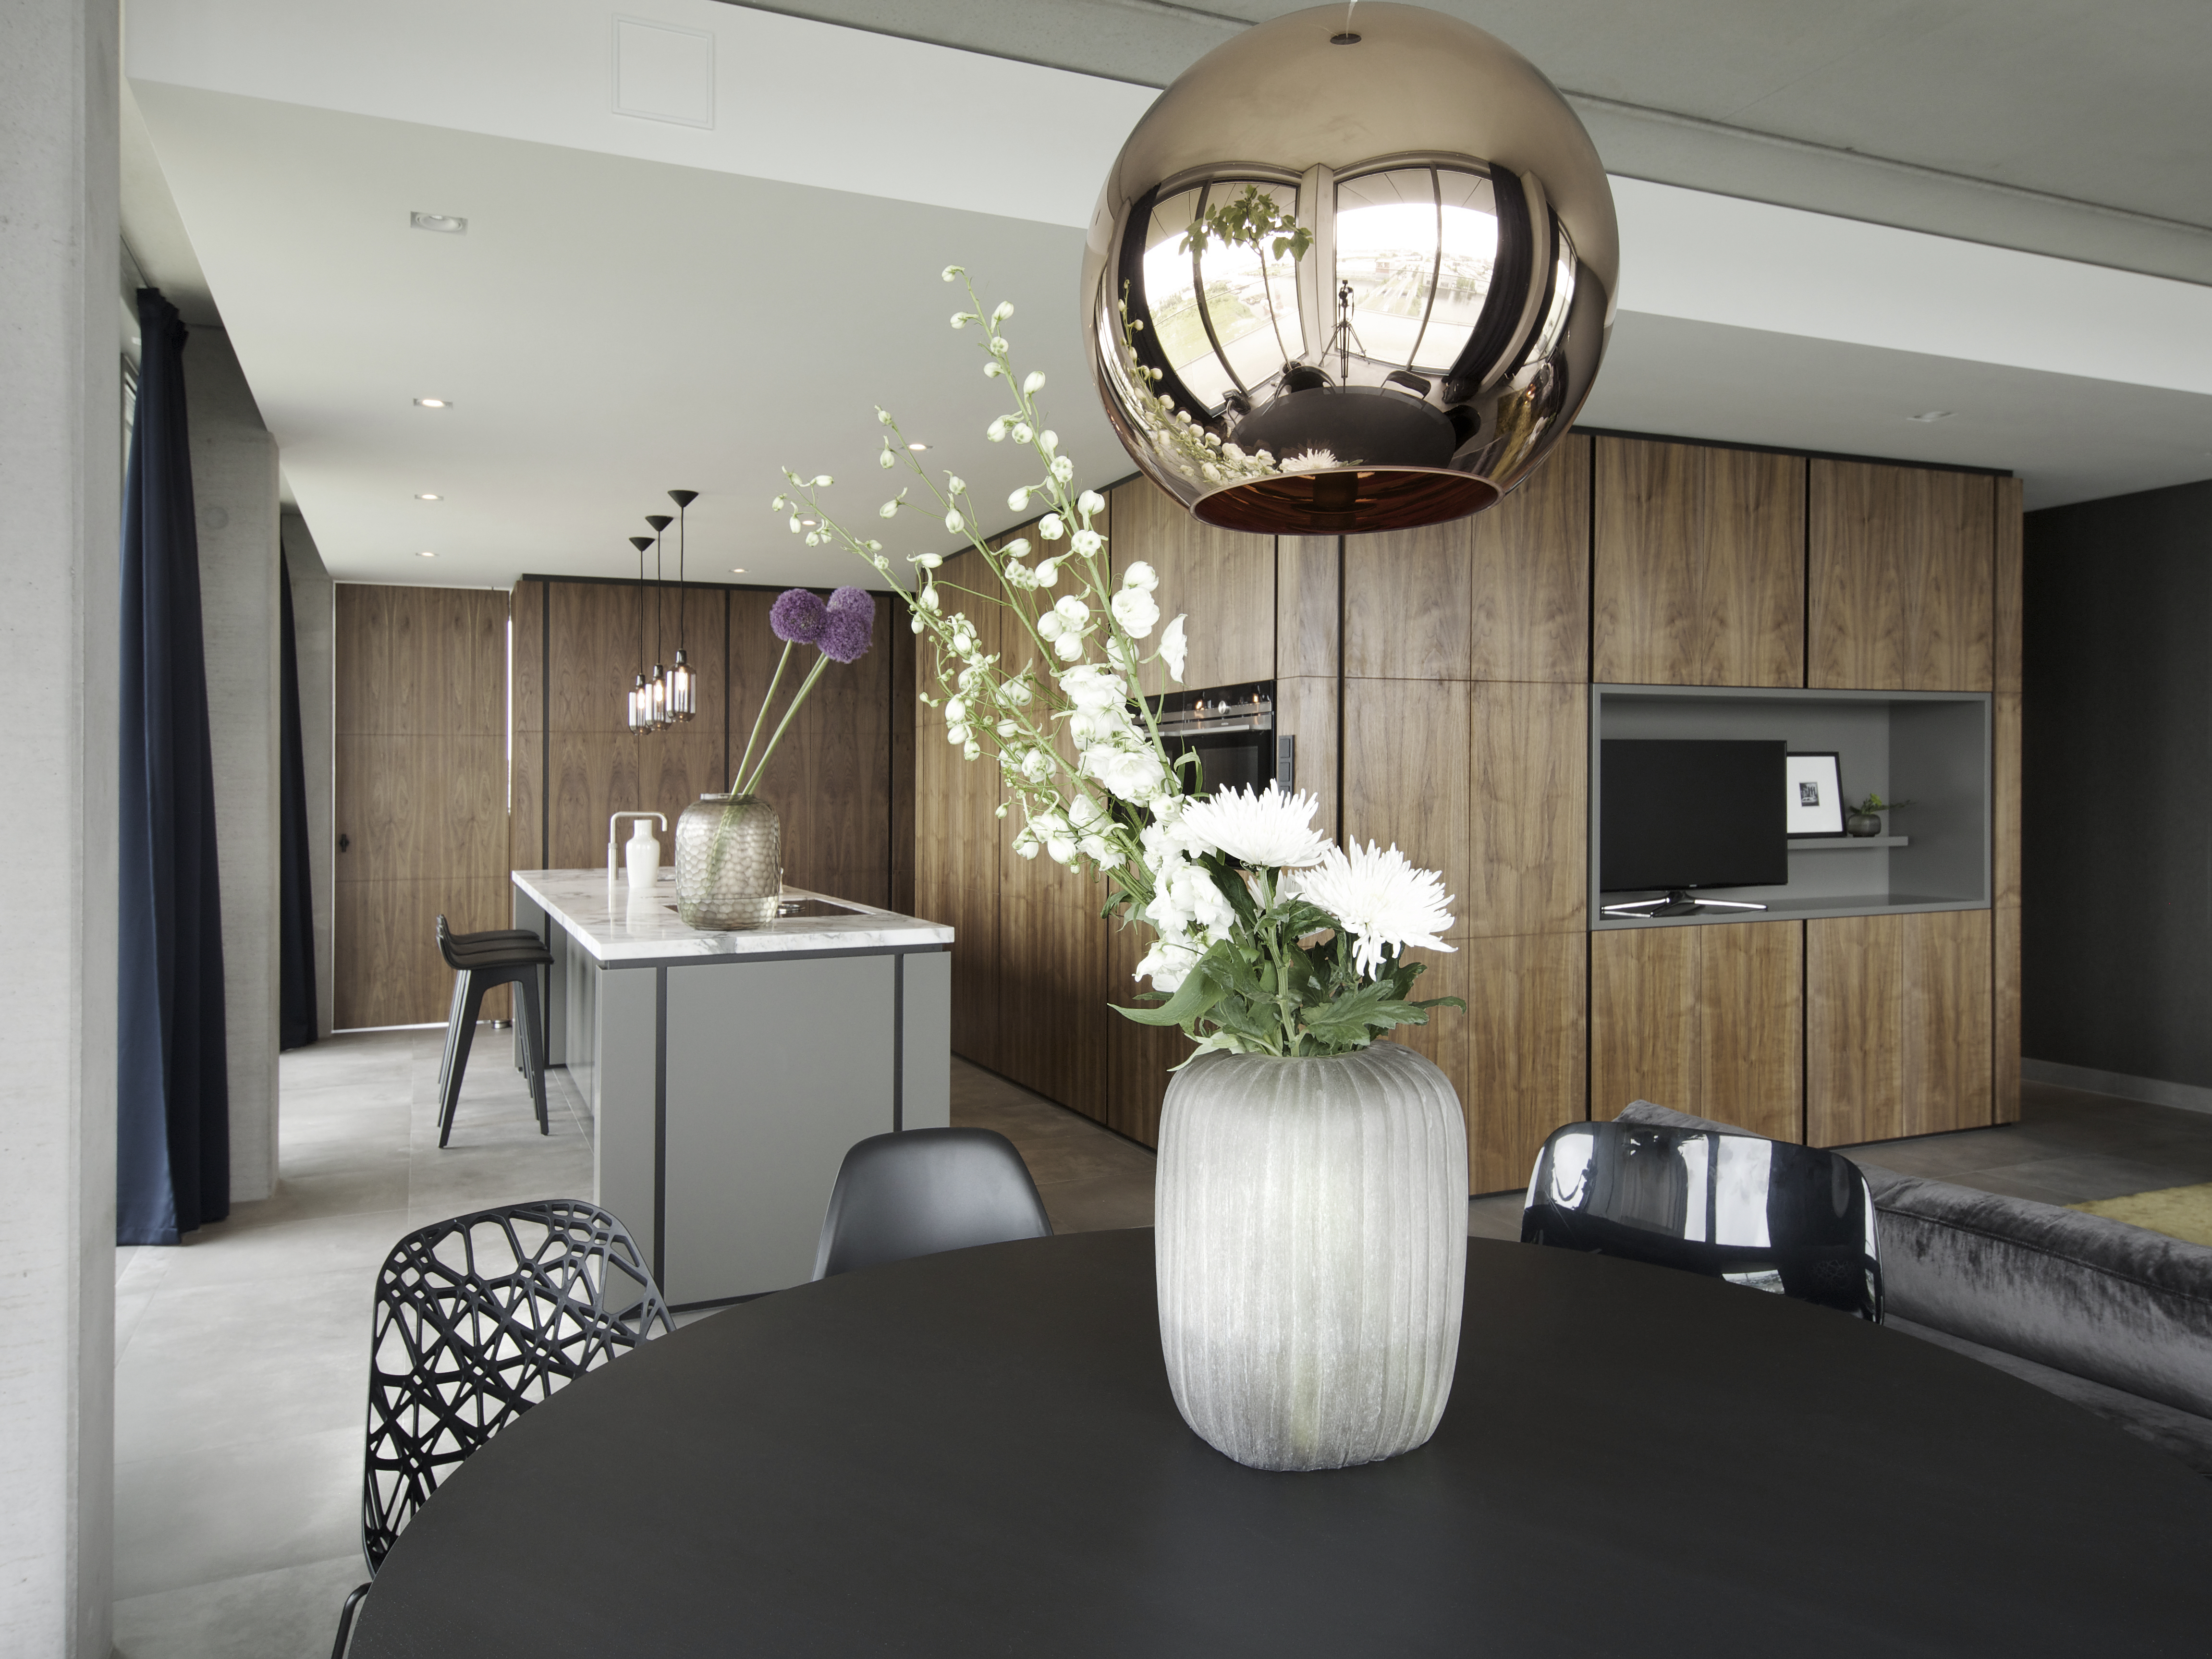 Interior design black jack amsterdam kne for Interior design amsterdam